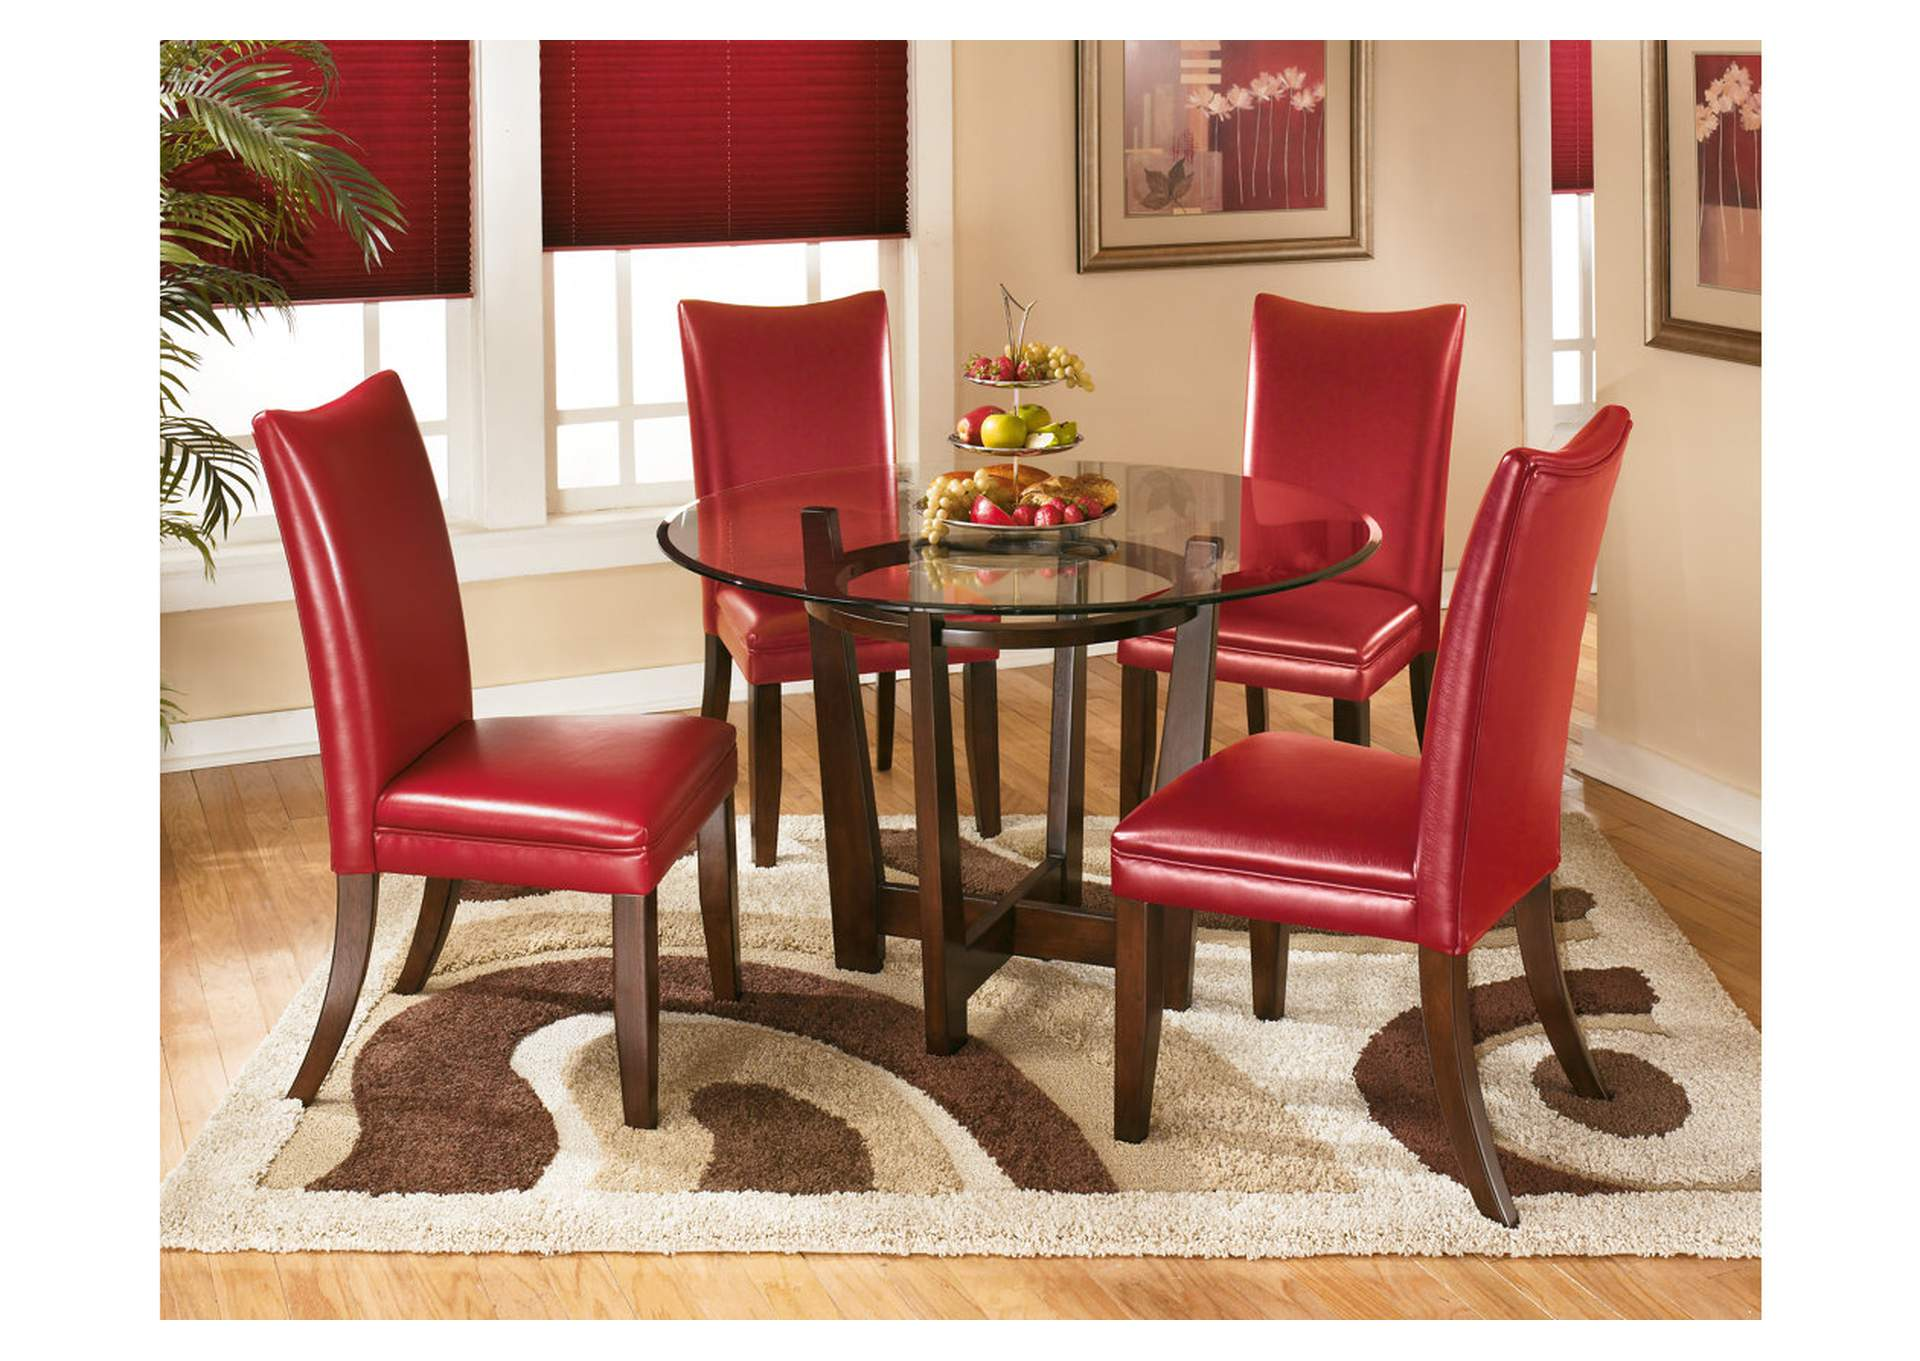 ROSES Flooring And Furniture Charell Round Dining Table W 4 Red Side Chairs